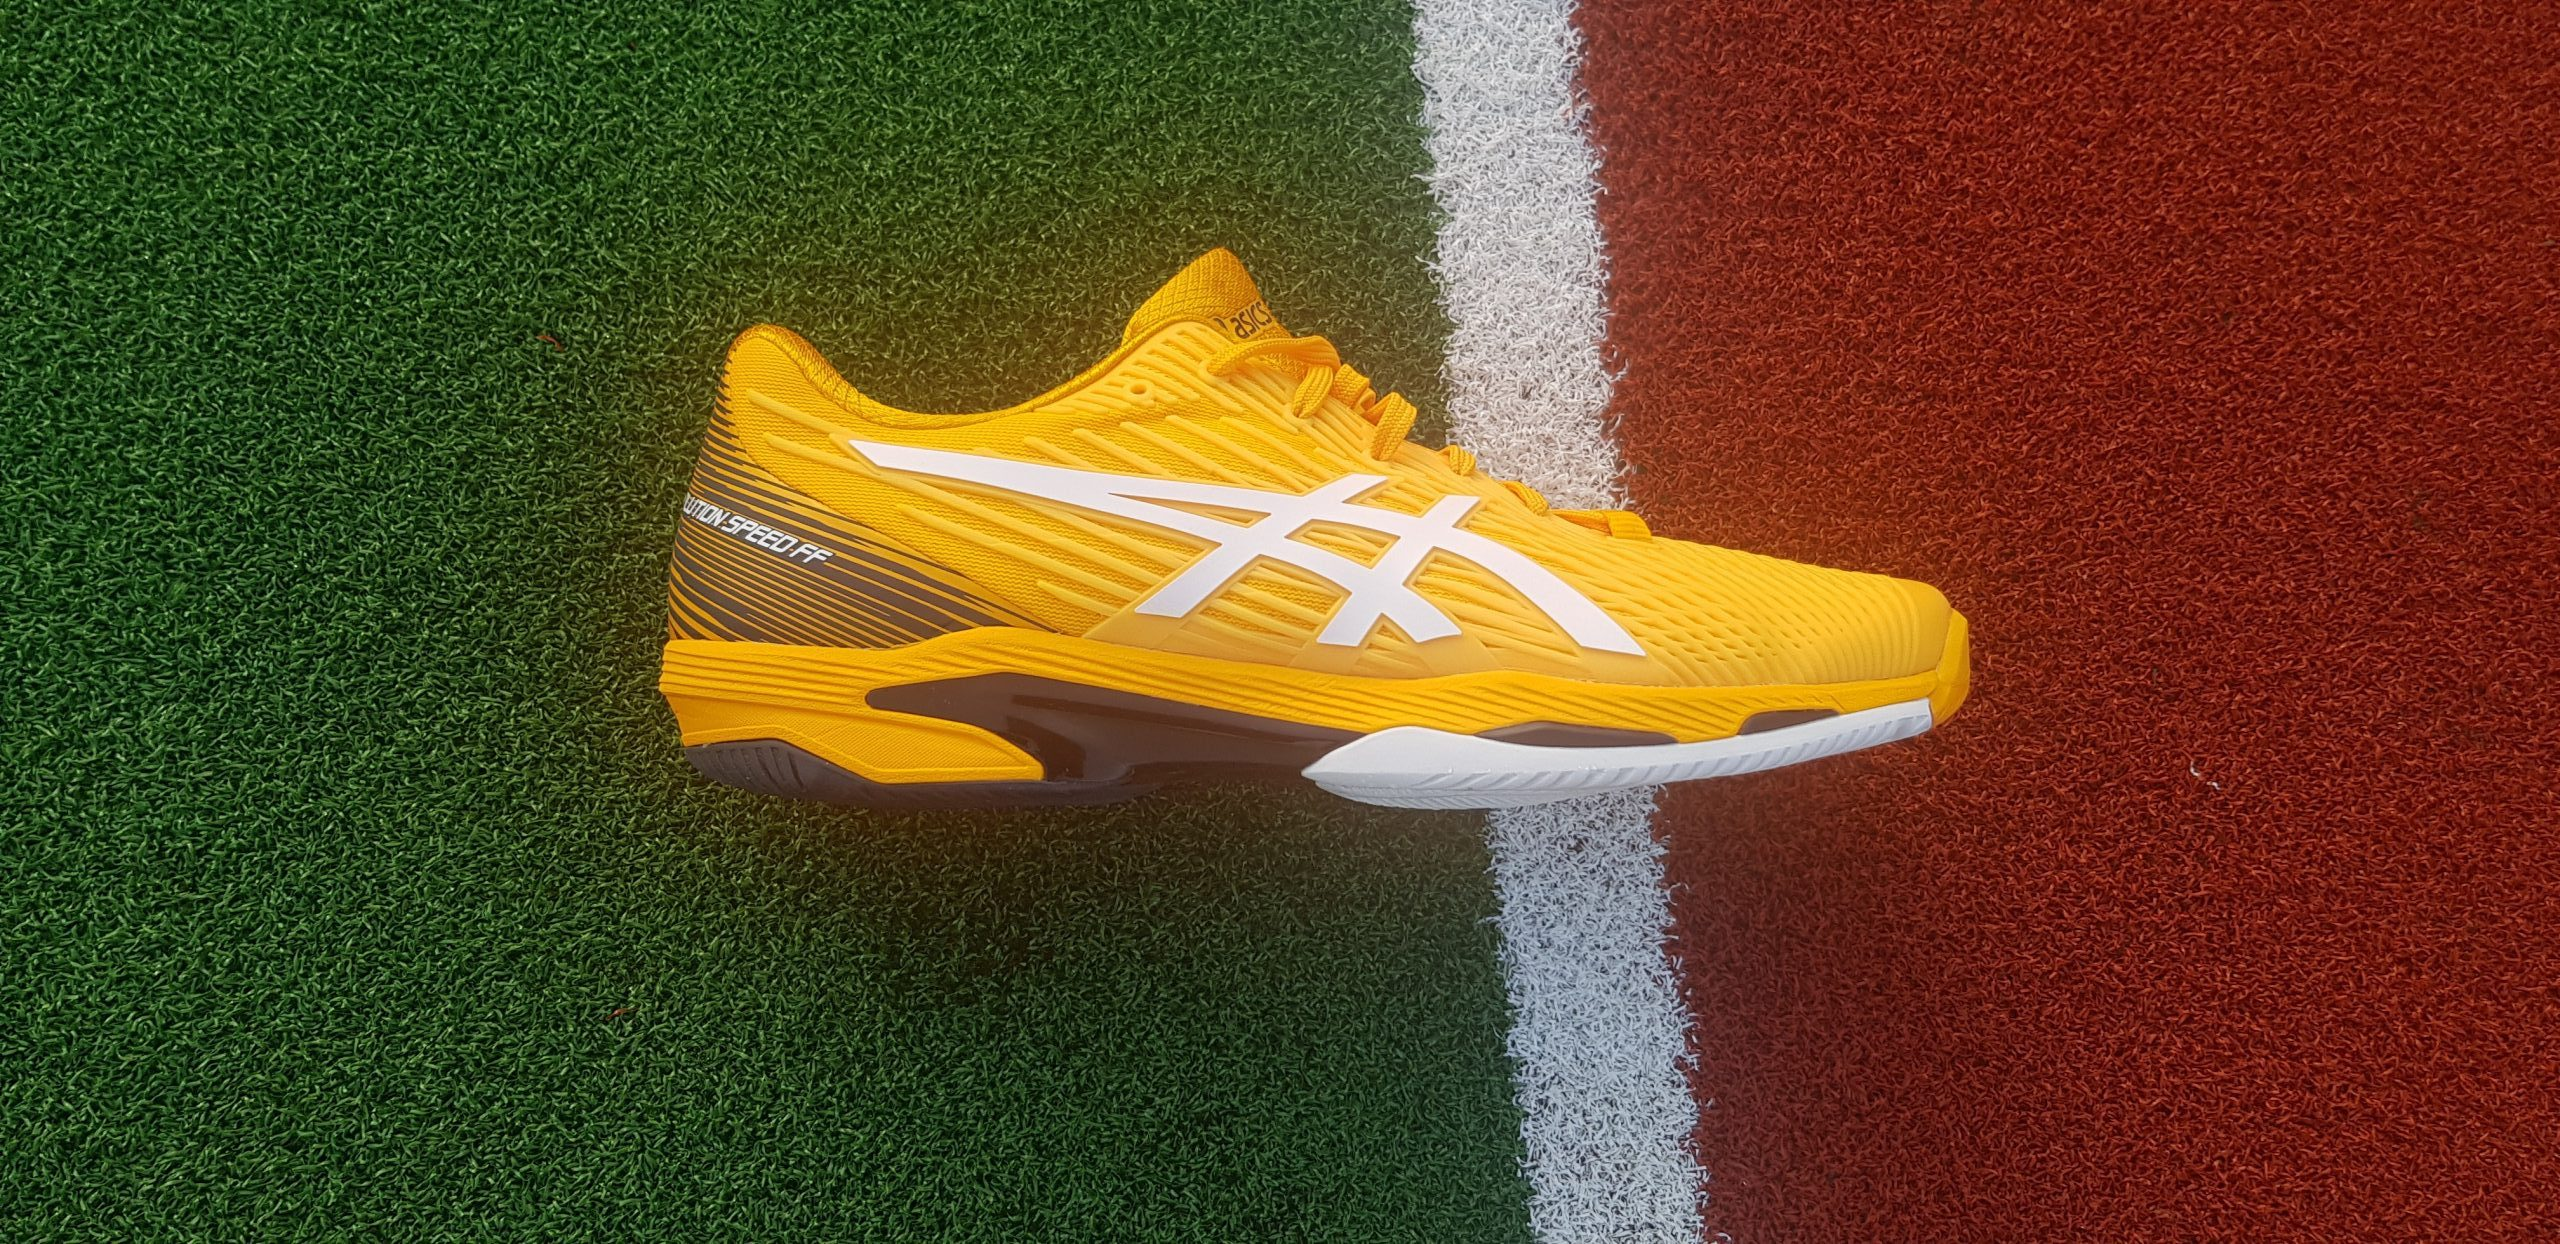 contar hasta manzana Alicia  ASICS Solution Speed FF 2 - Shoe Review. - LOVE TENNIS Blog